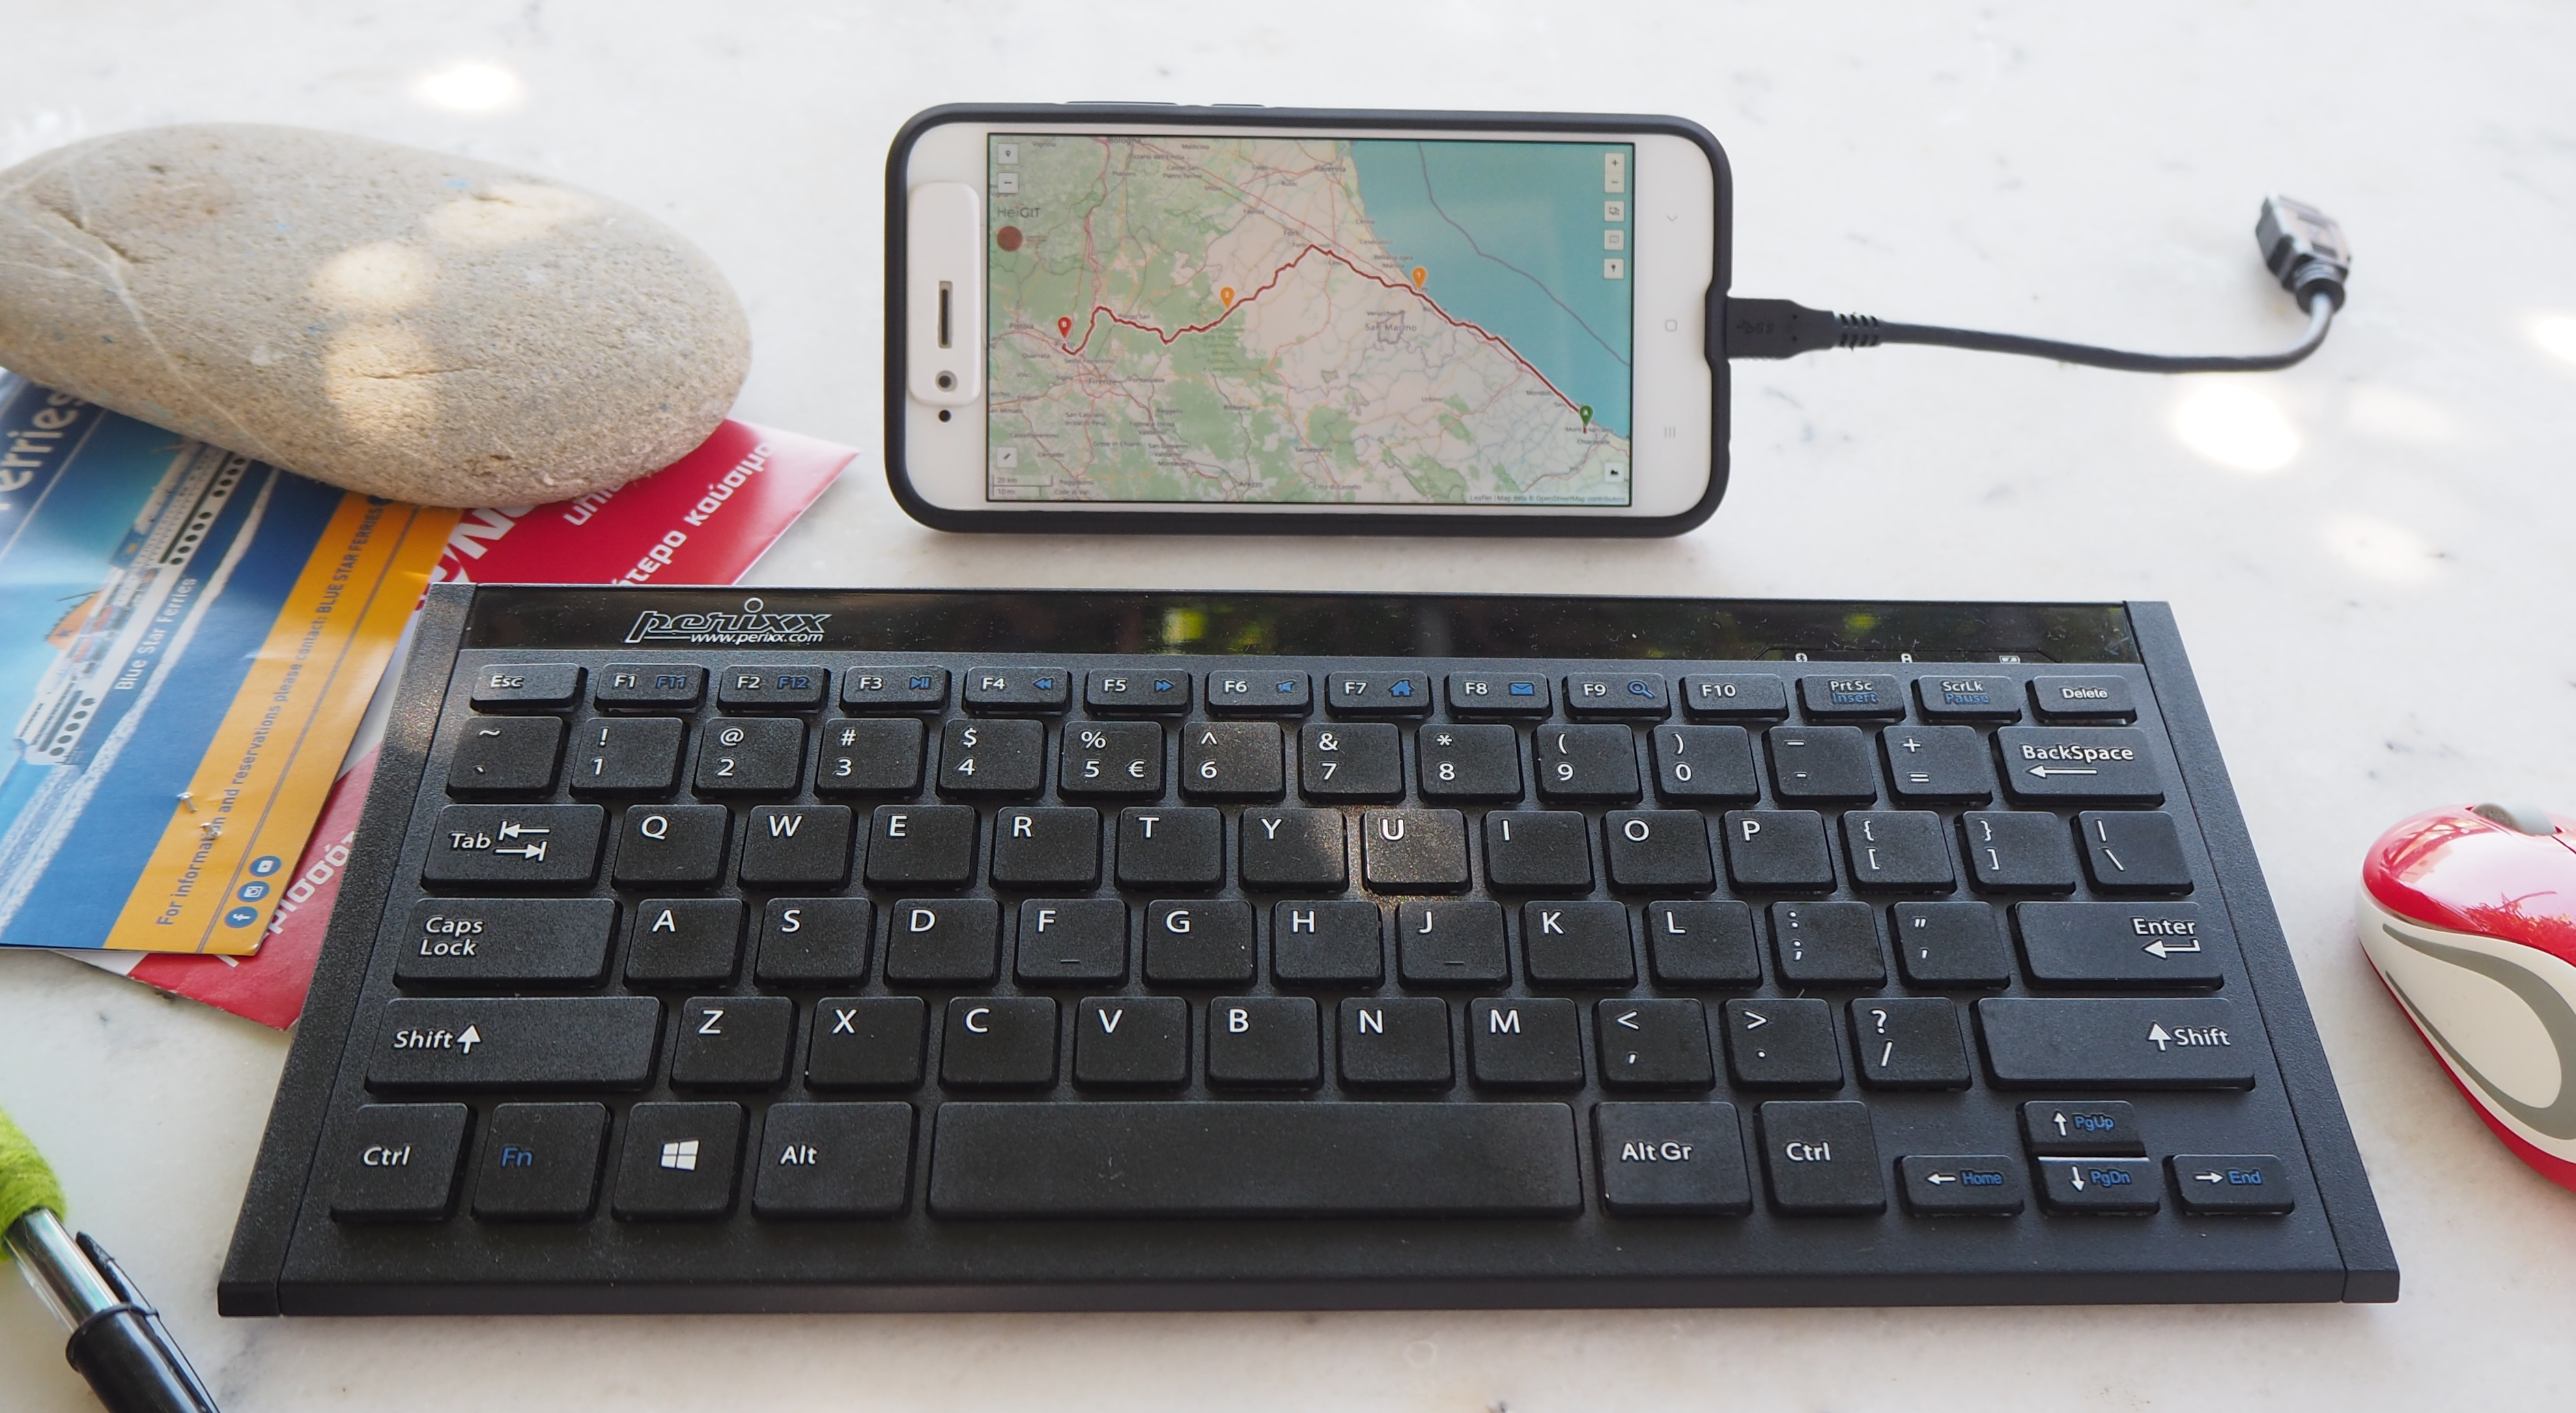 An Android Smartphone with keyboard and mouse